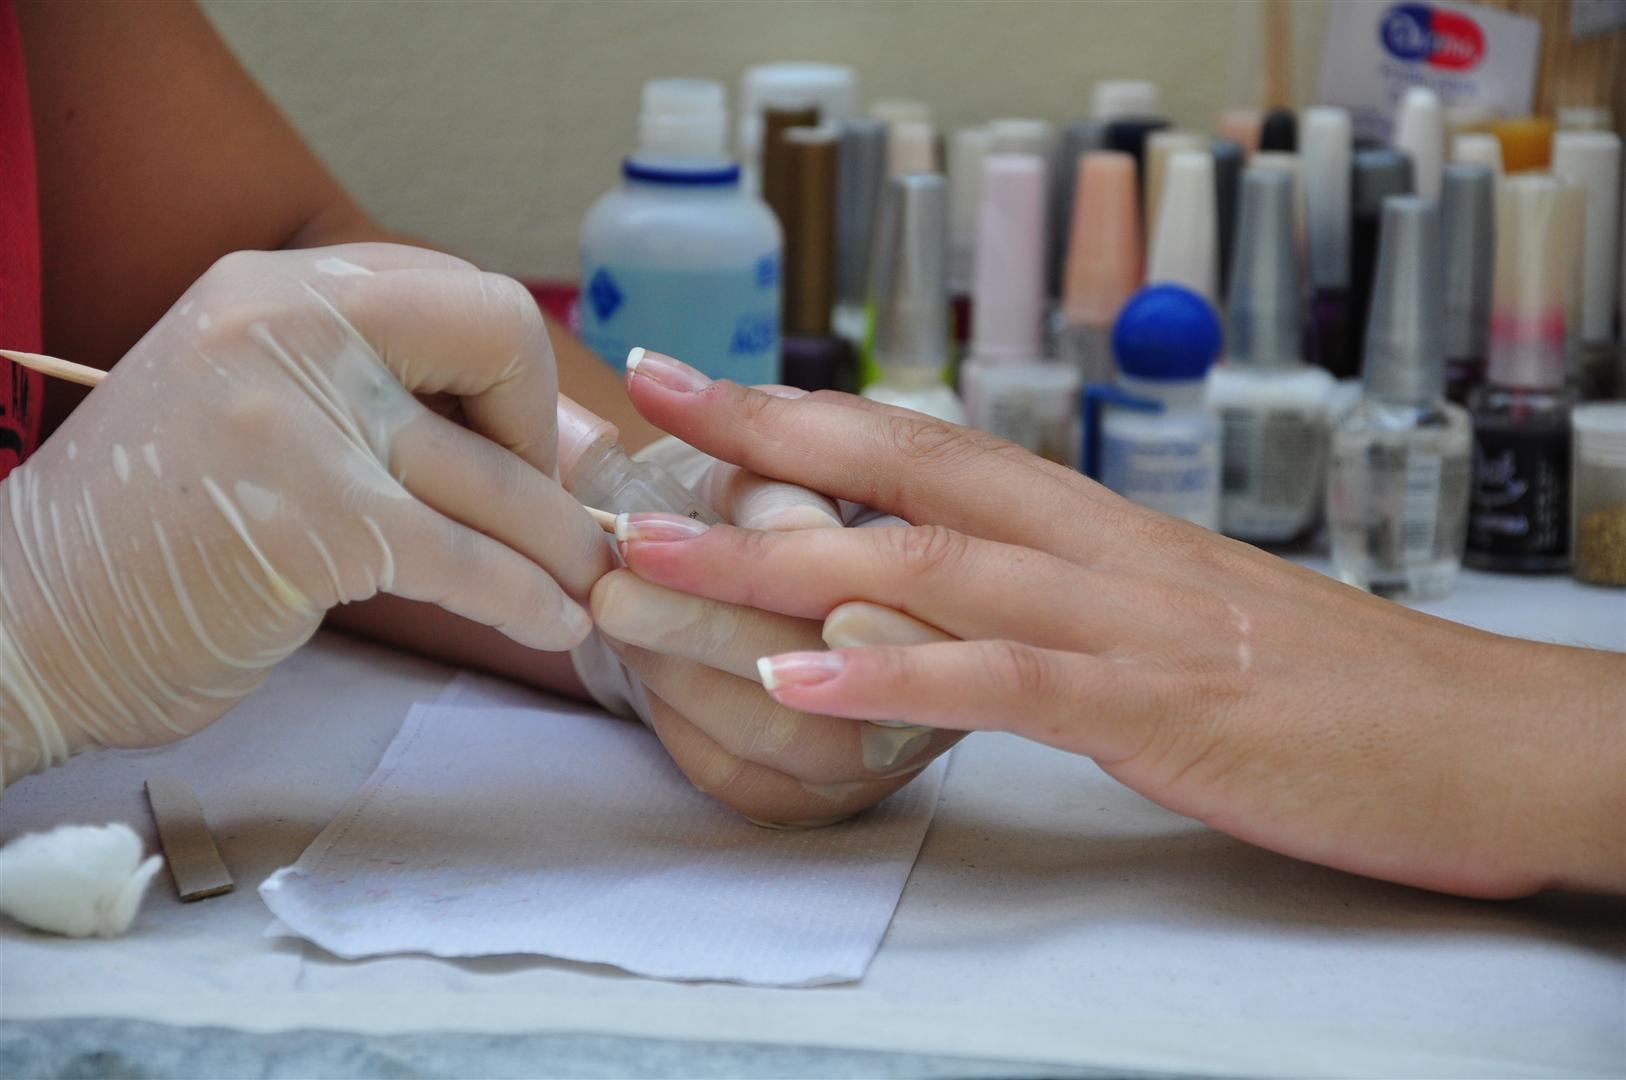 """Manicure (5)"" by ASCOM Prefeitura de Votuporanga is licensed under CC BY 2.0"